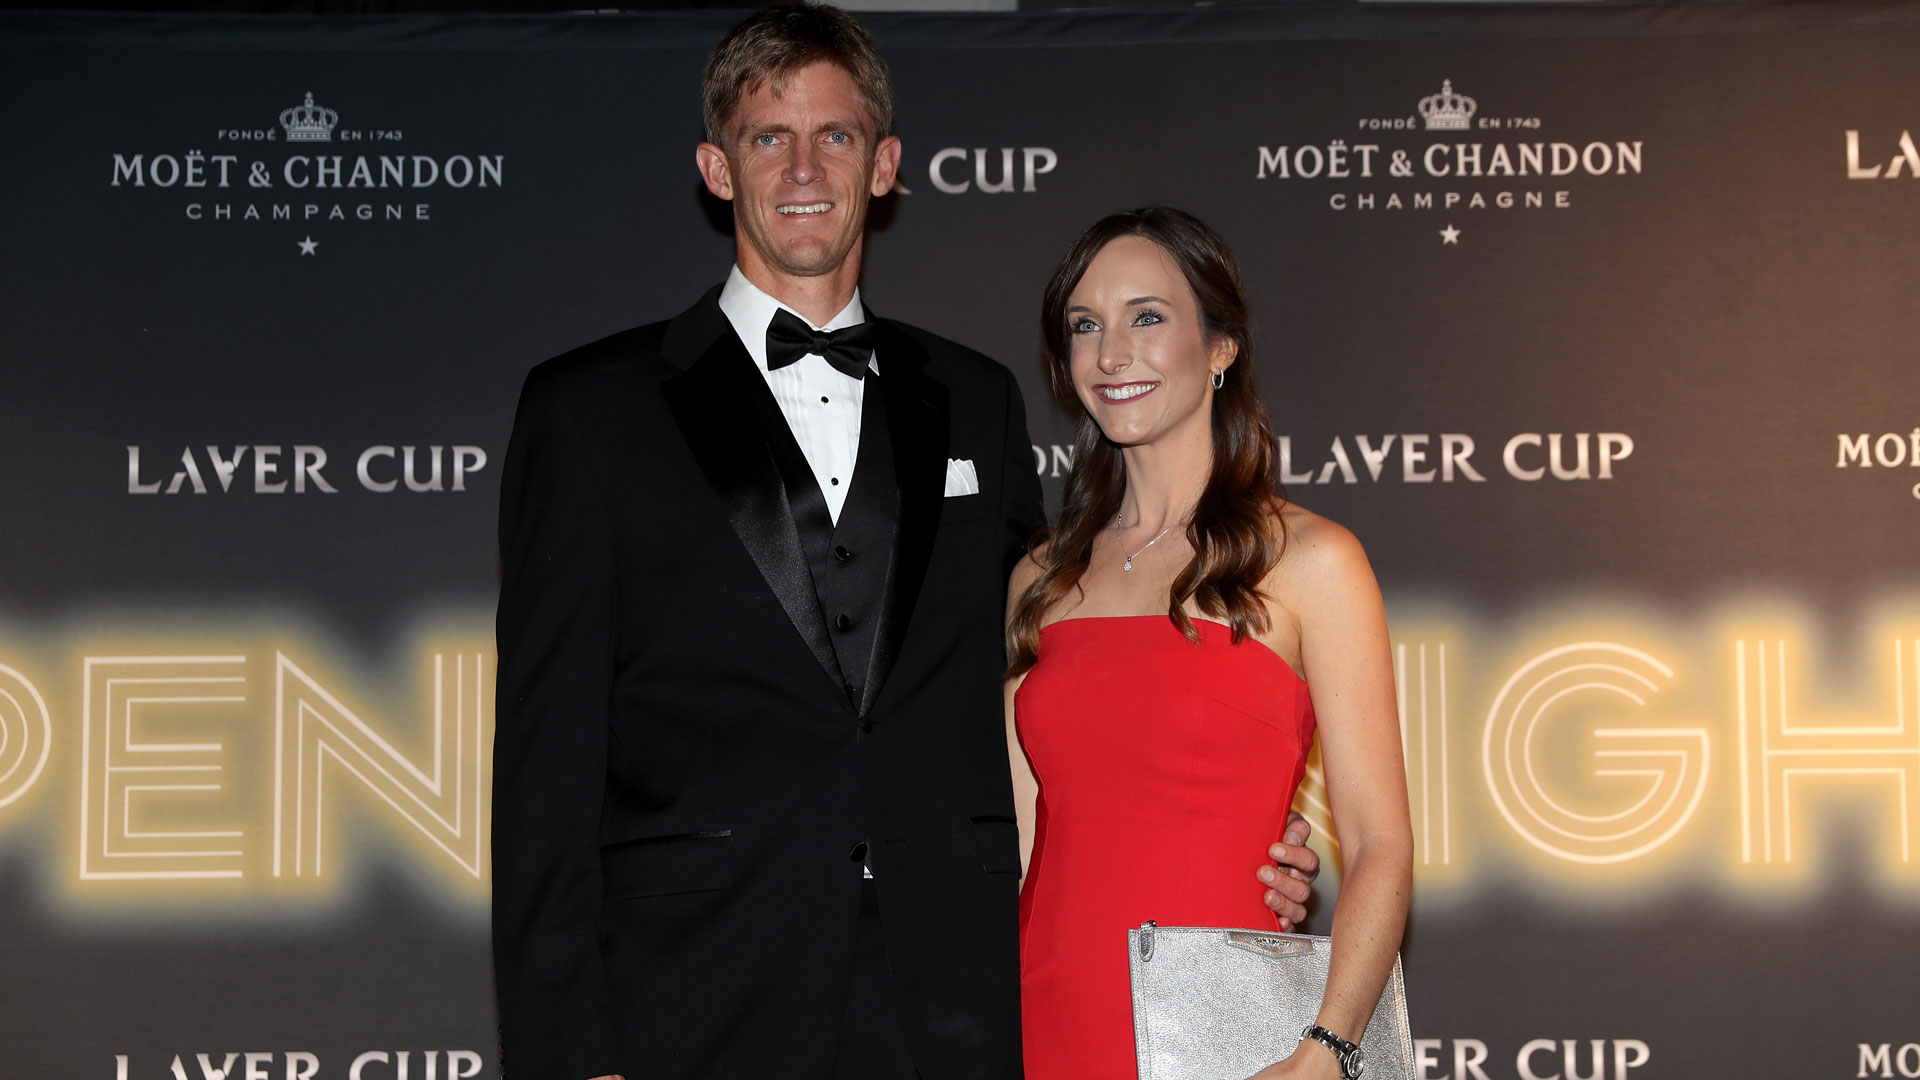 Kevin Anderson and his wife, Kelsey, at the 2018 Laver Cup